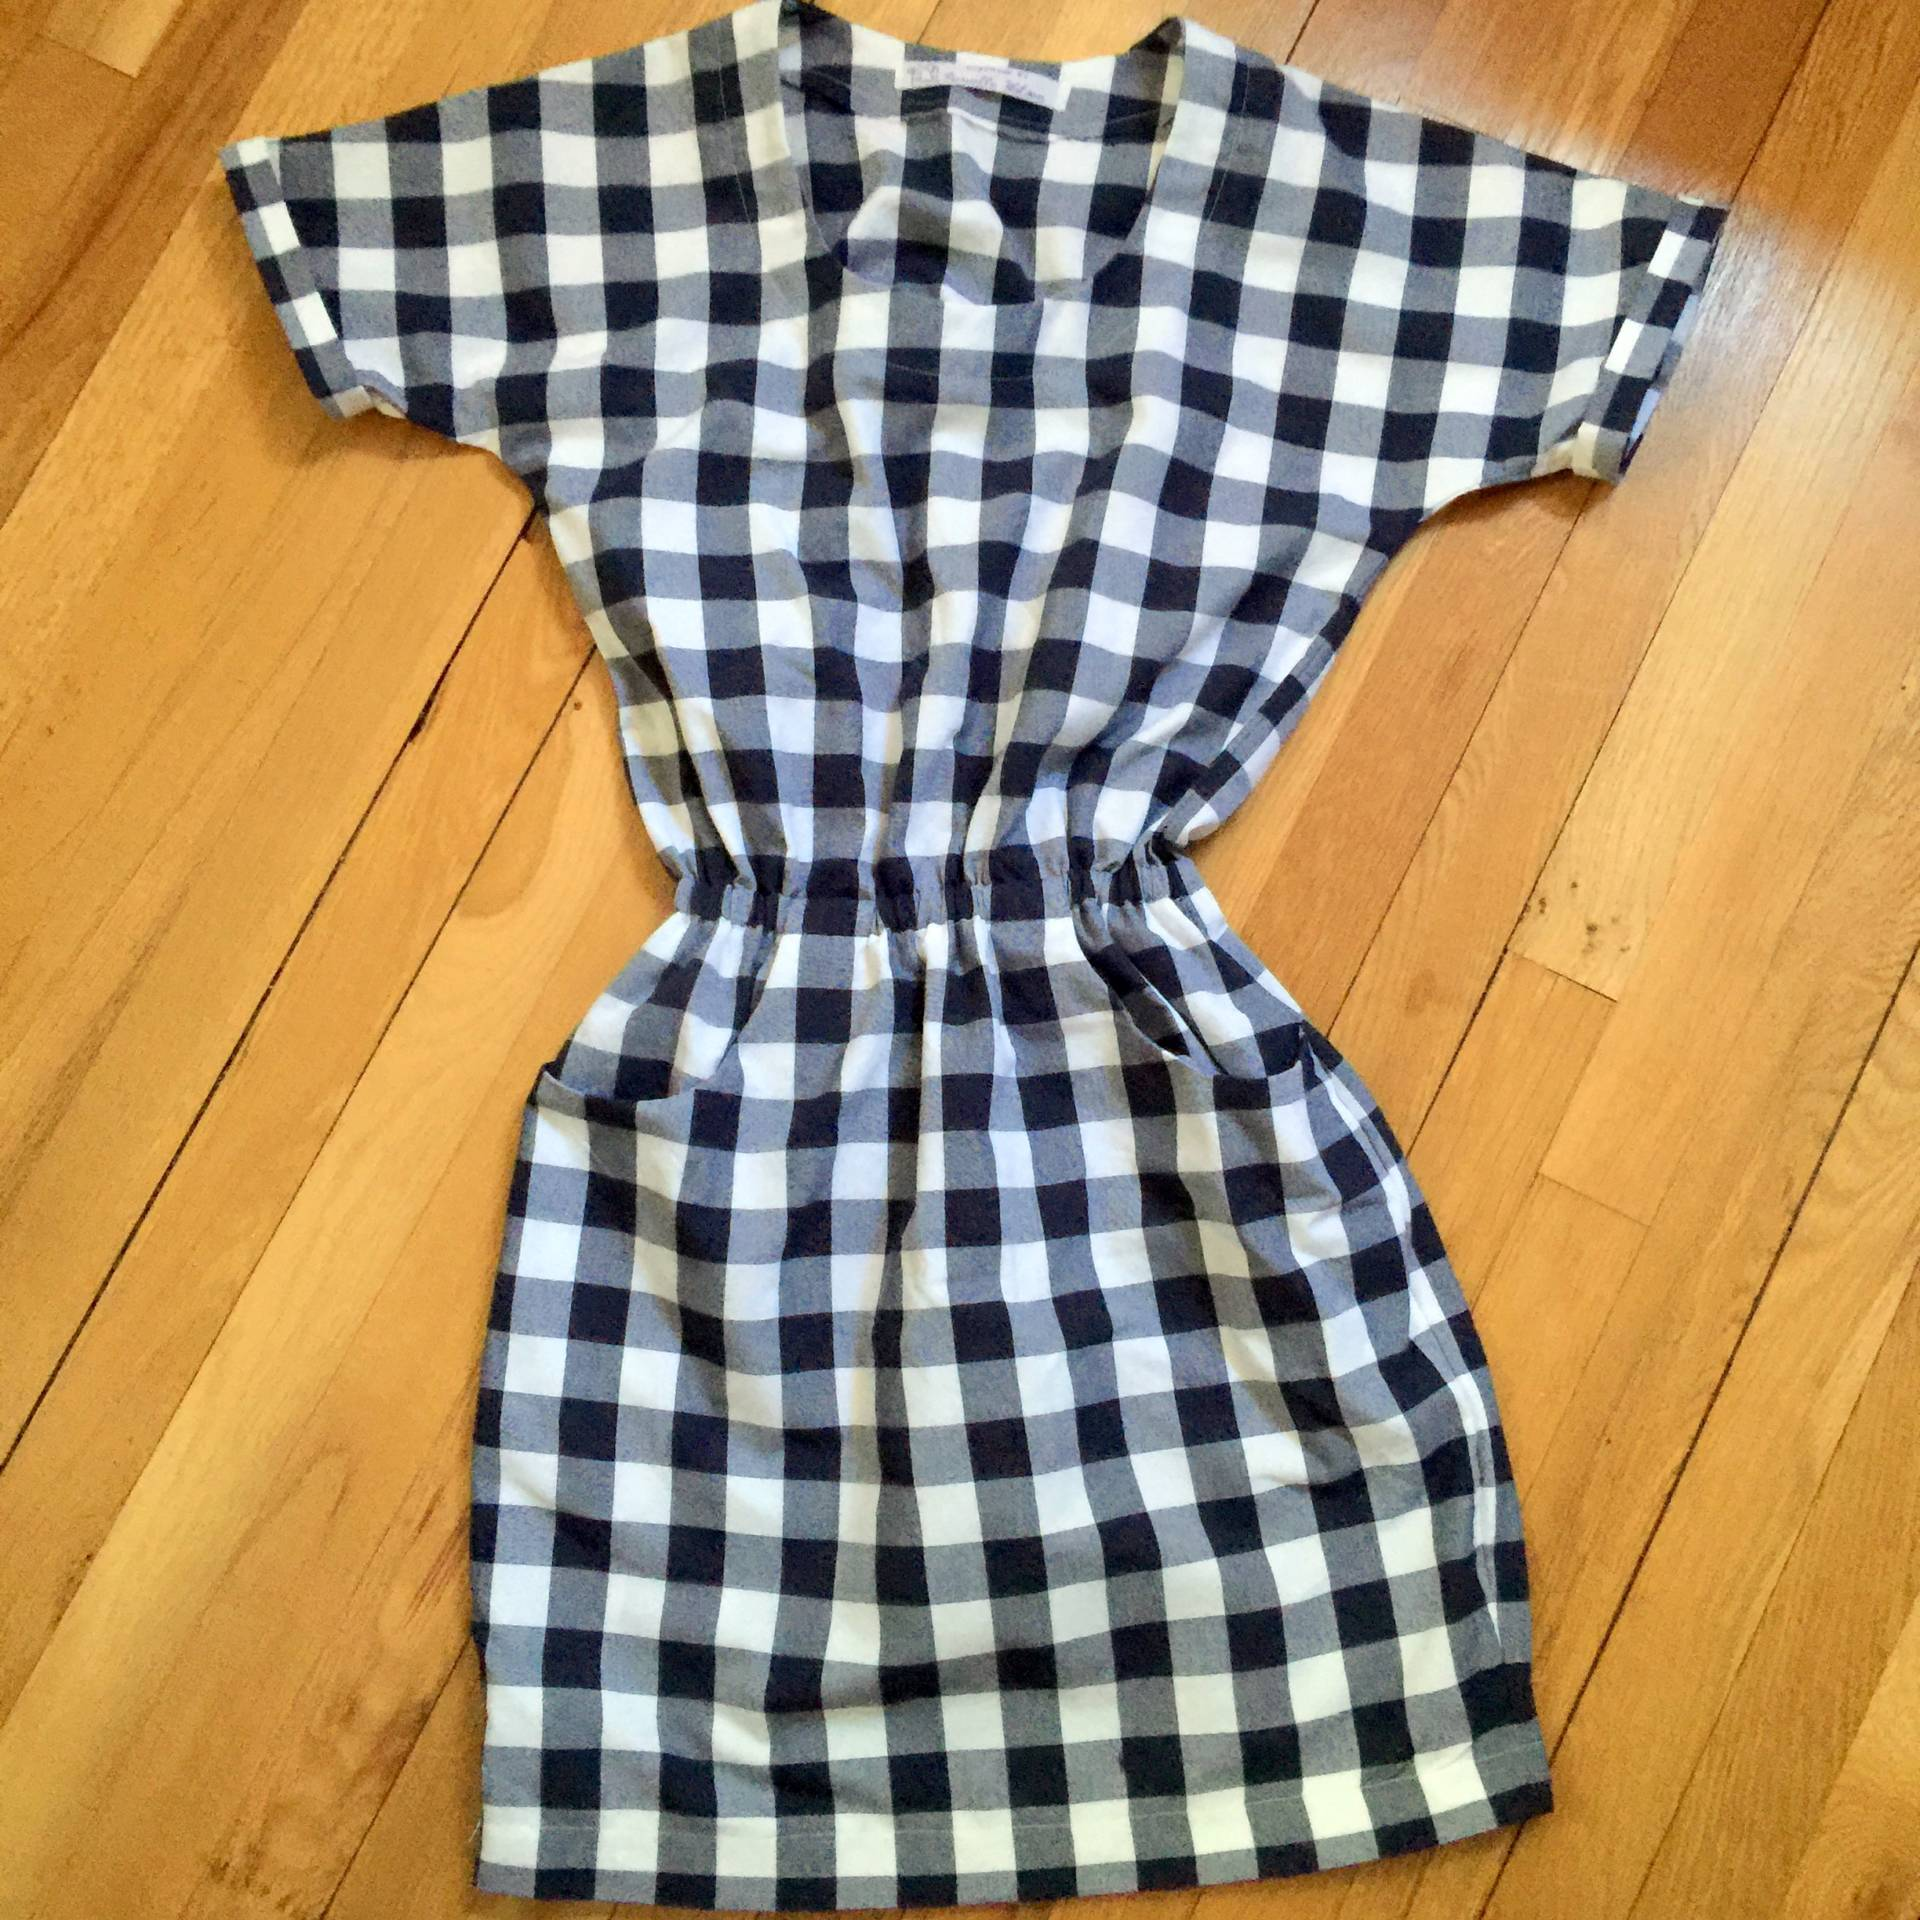 Bettine Dress by Tilly and the Buttons; handmade dress, diy fashion